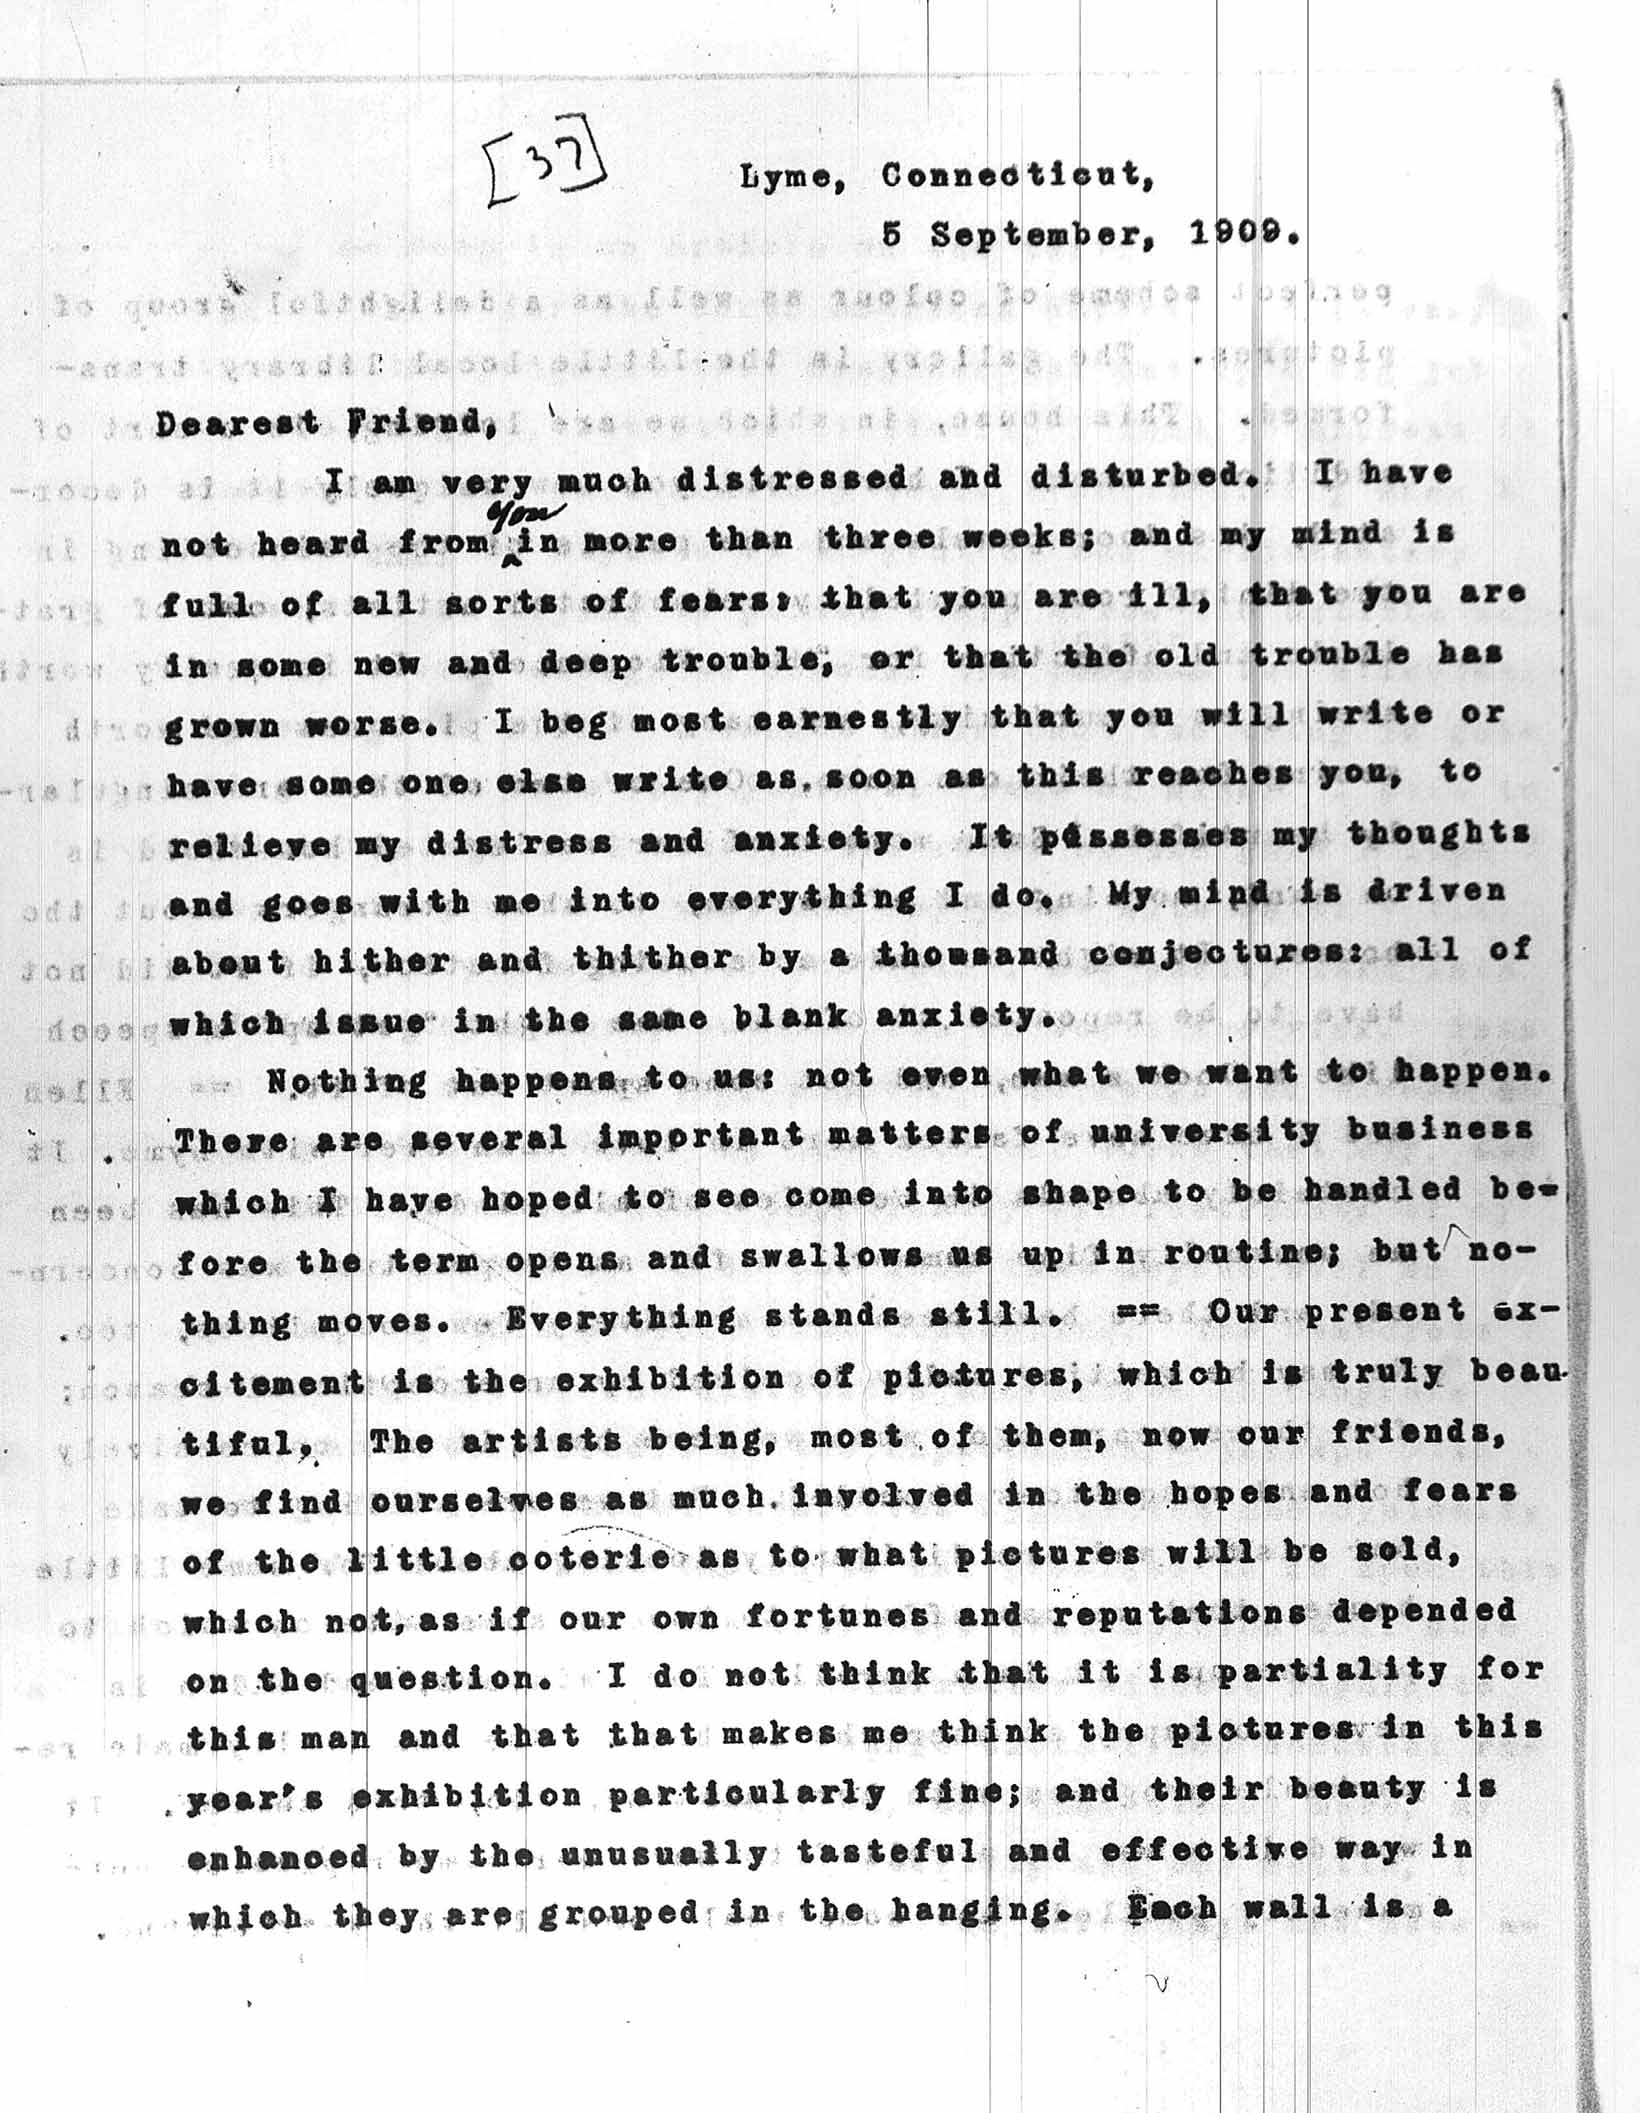 artwork of former first lady ellen axson wilson in old lyme ct 5 1909 letter from woodrow wilson to mary peck sent from lyme wilson to peck 09051909 page 1